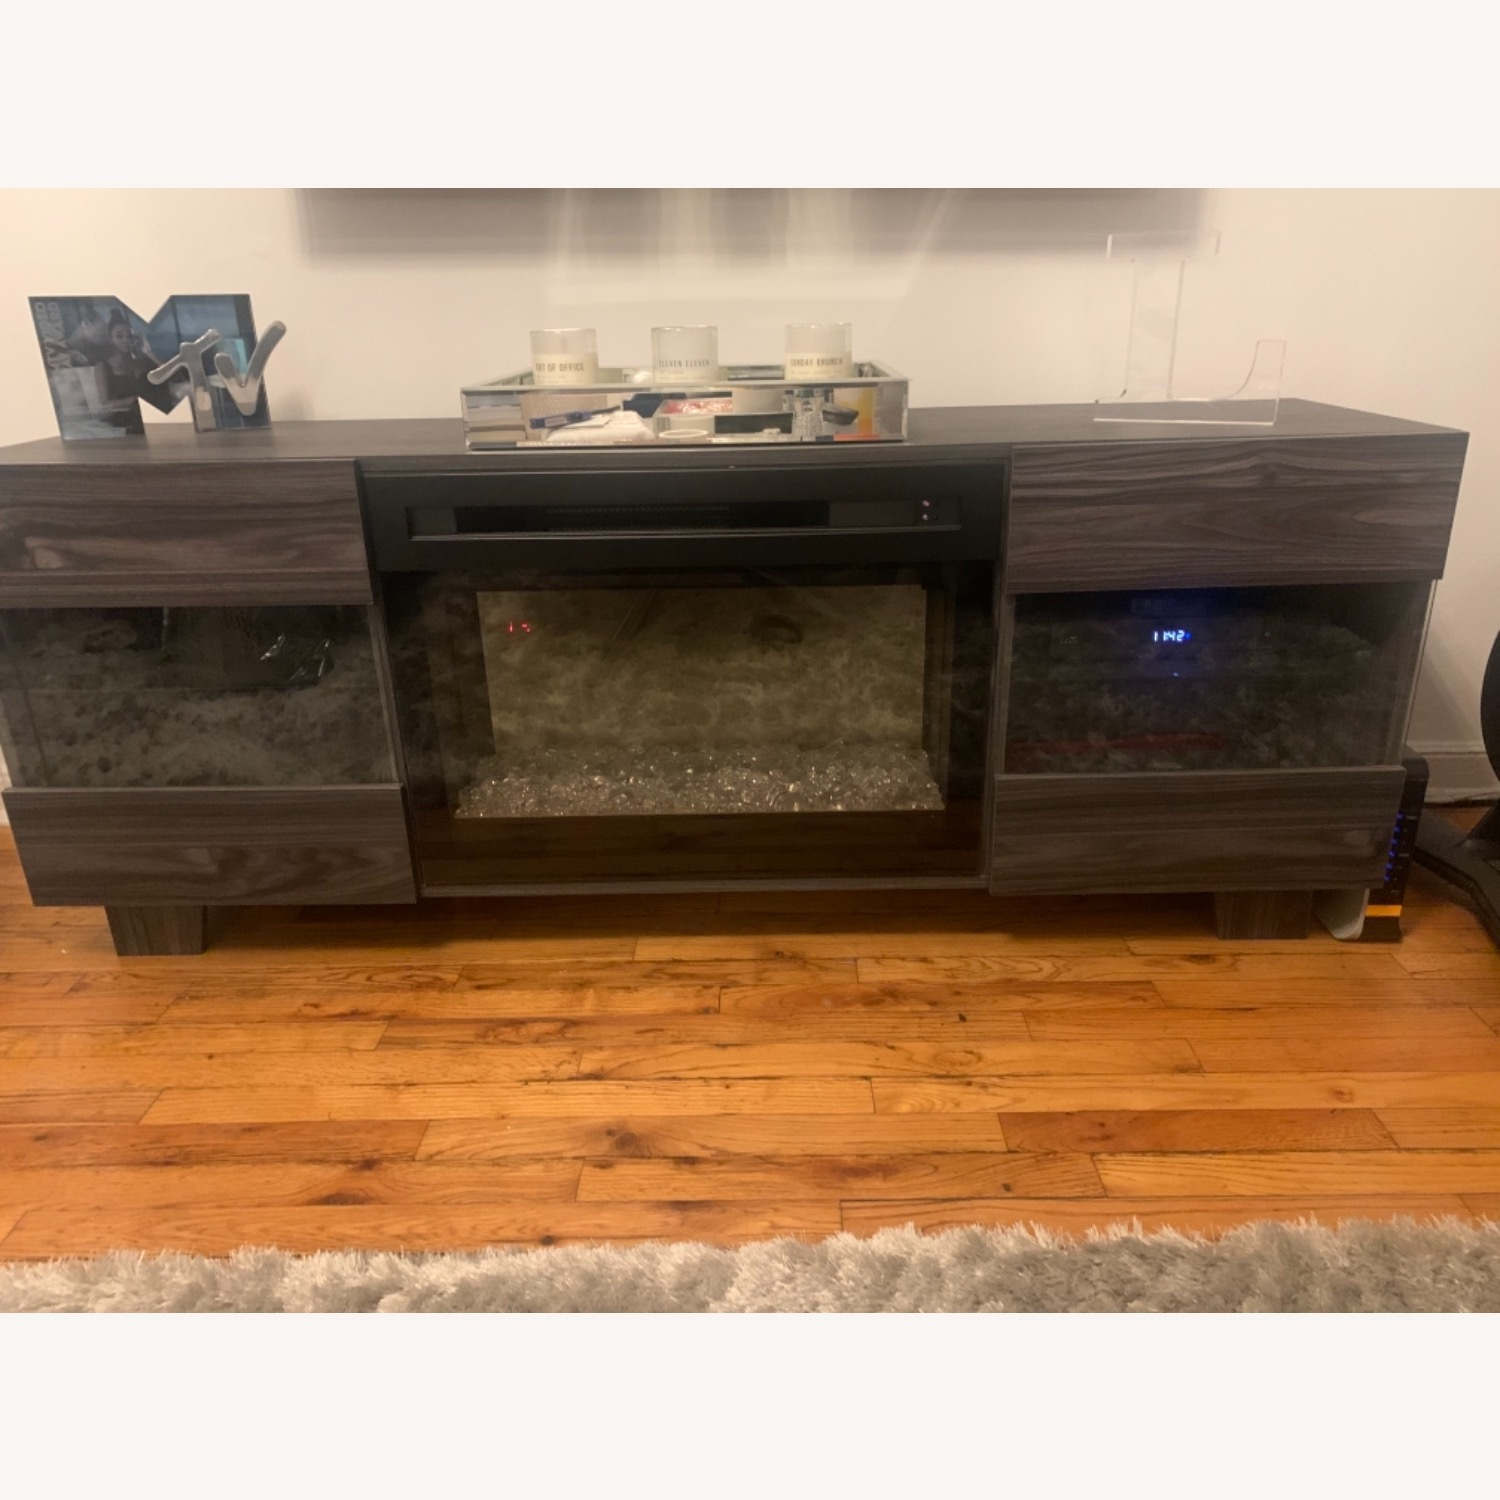 Wayfair Max TV Stand with Electric Fireplace by Dimplex - image-1